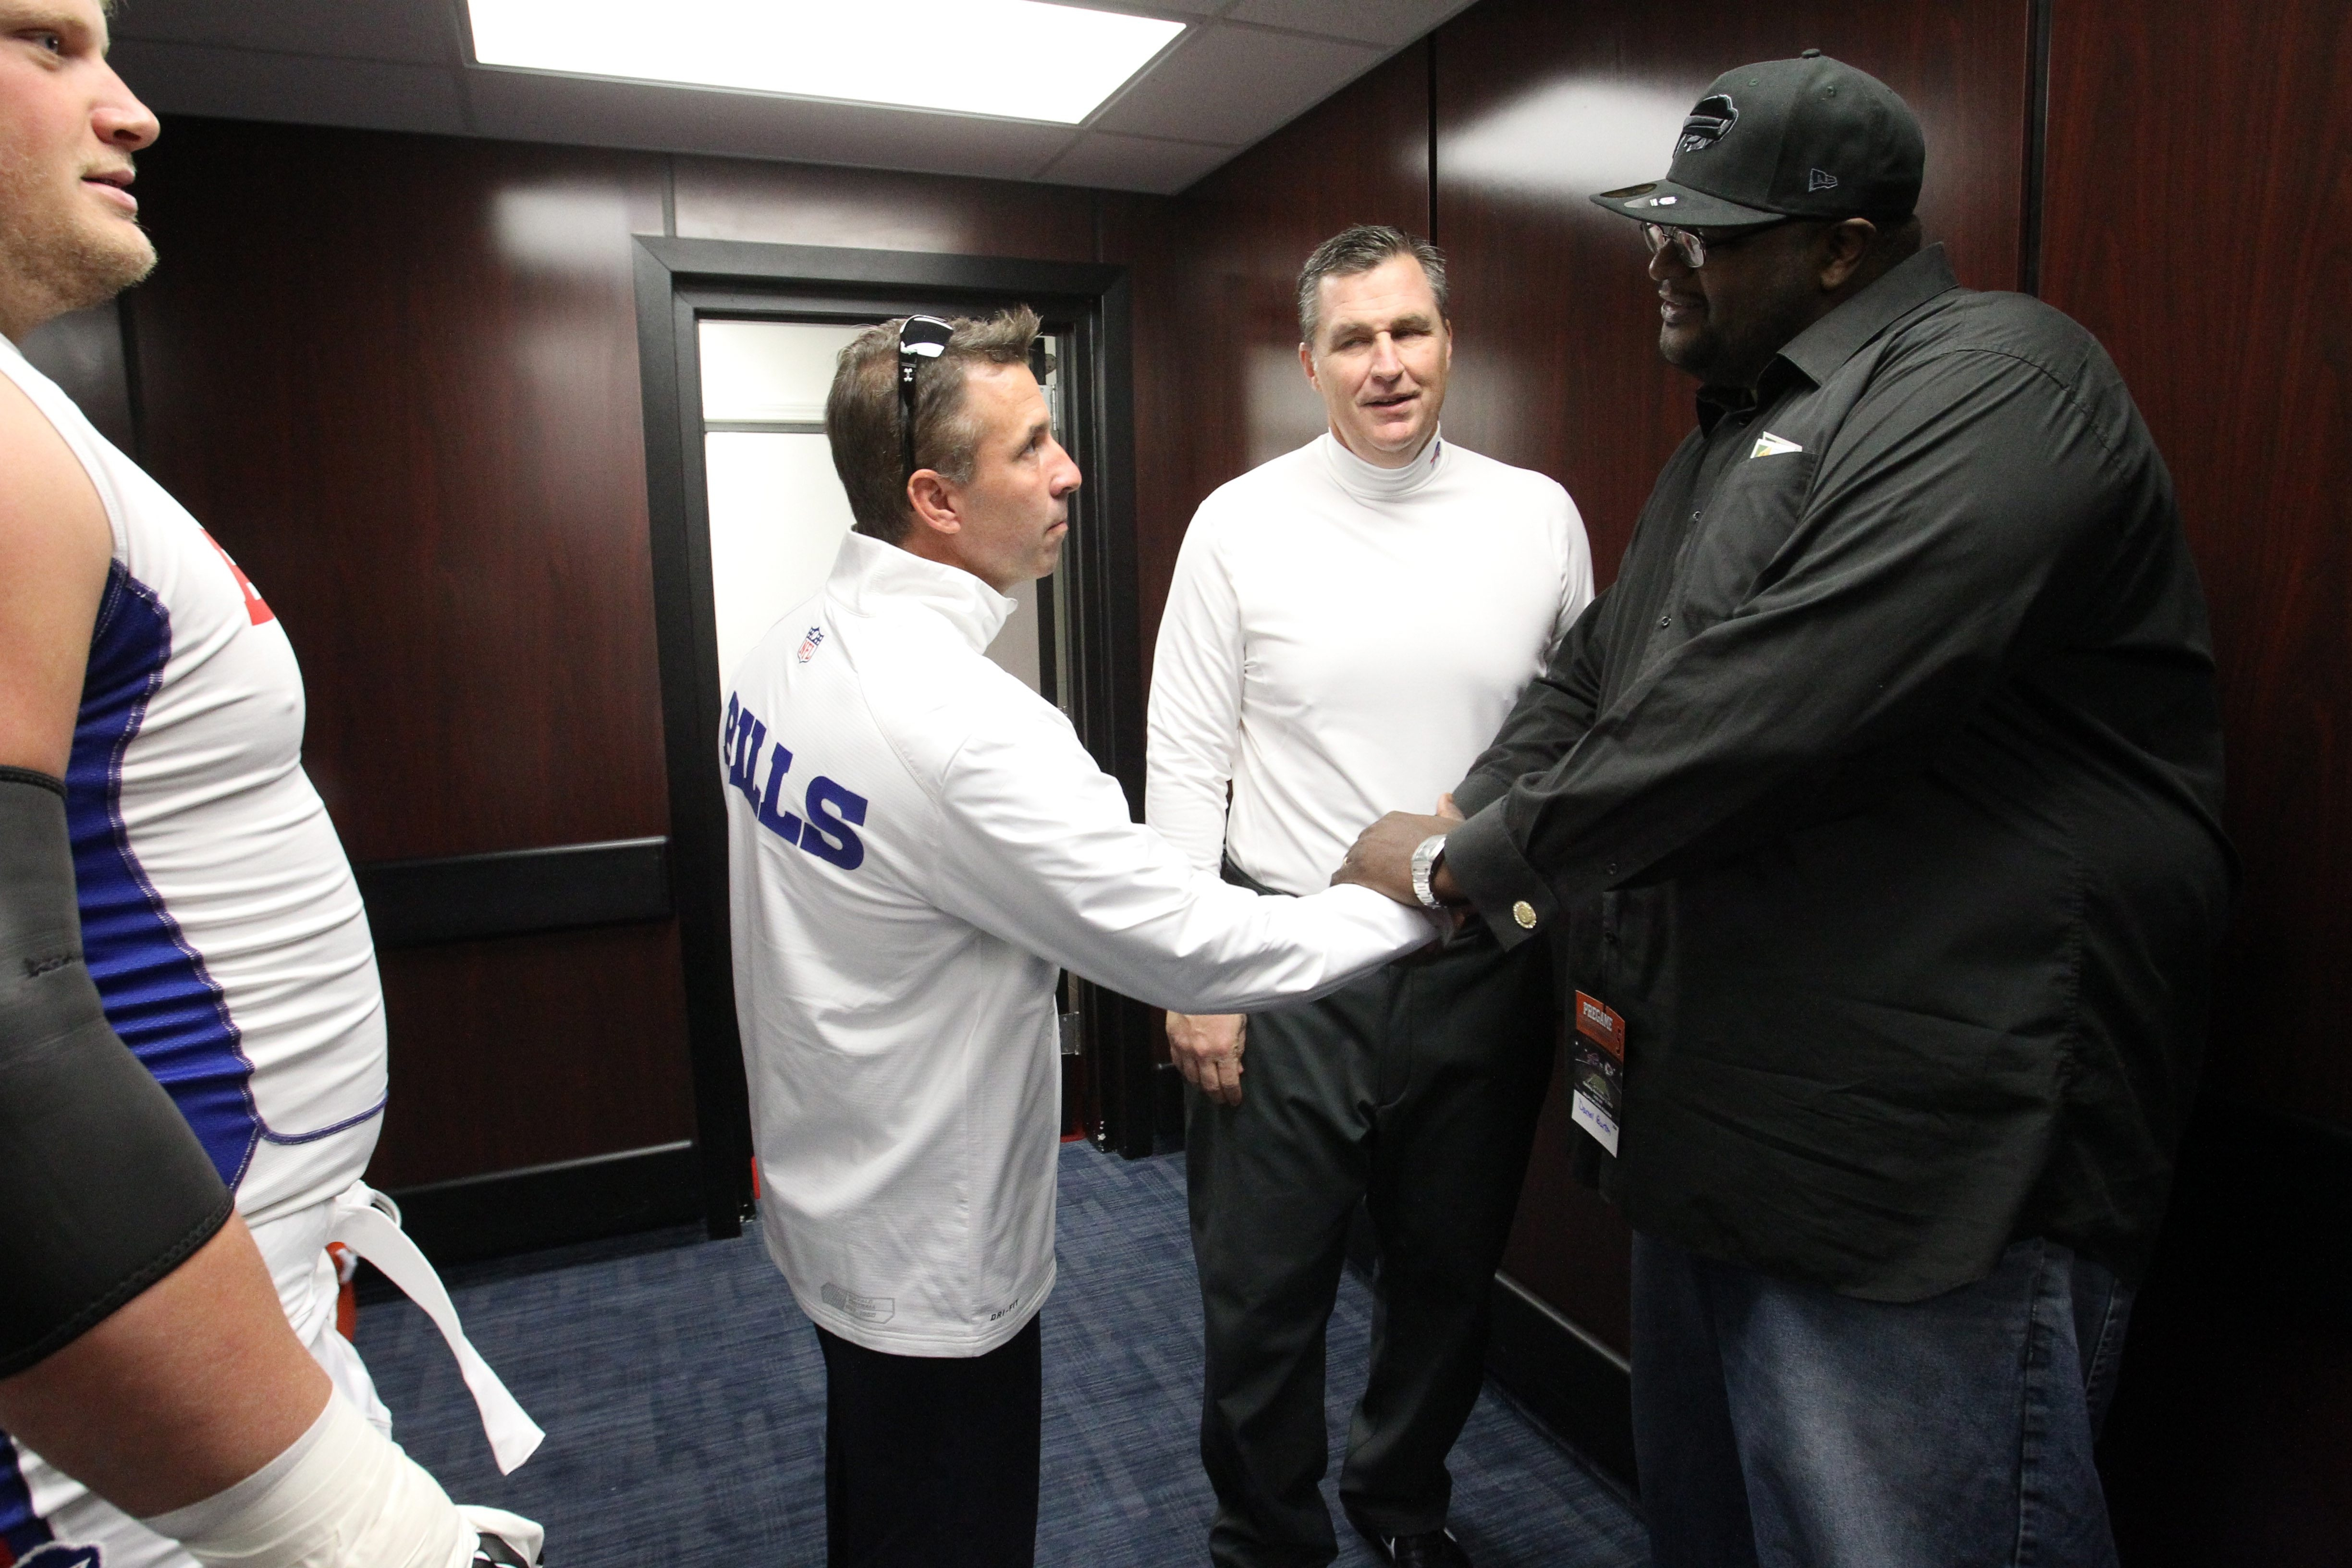 Russ Brandon (left), president and chief executive officer of the Buffalo Bills, and head coach Doug Marrone (center) invited Darnell Barton, the Metro bus driver who saved a woman's life, into the locker room before today's game at Ralph Wilson Stadium.